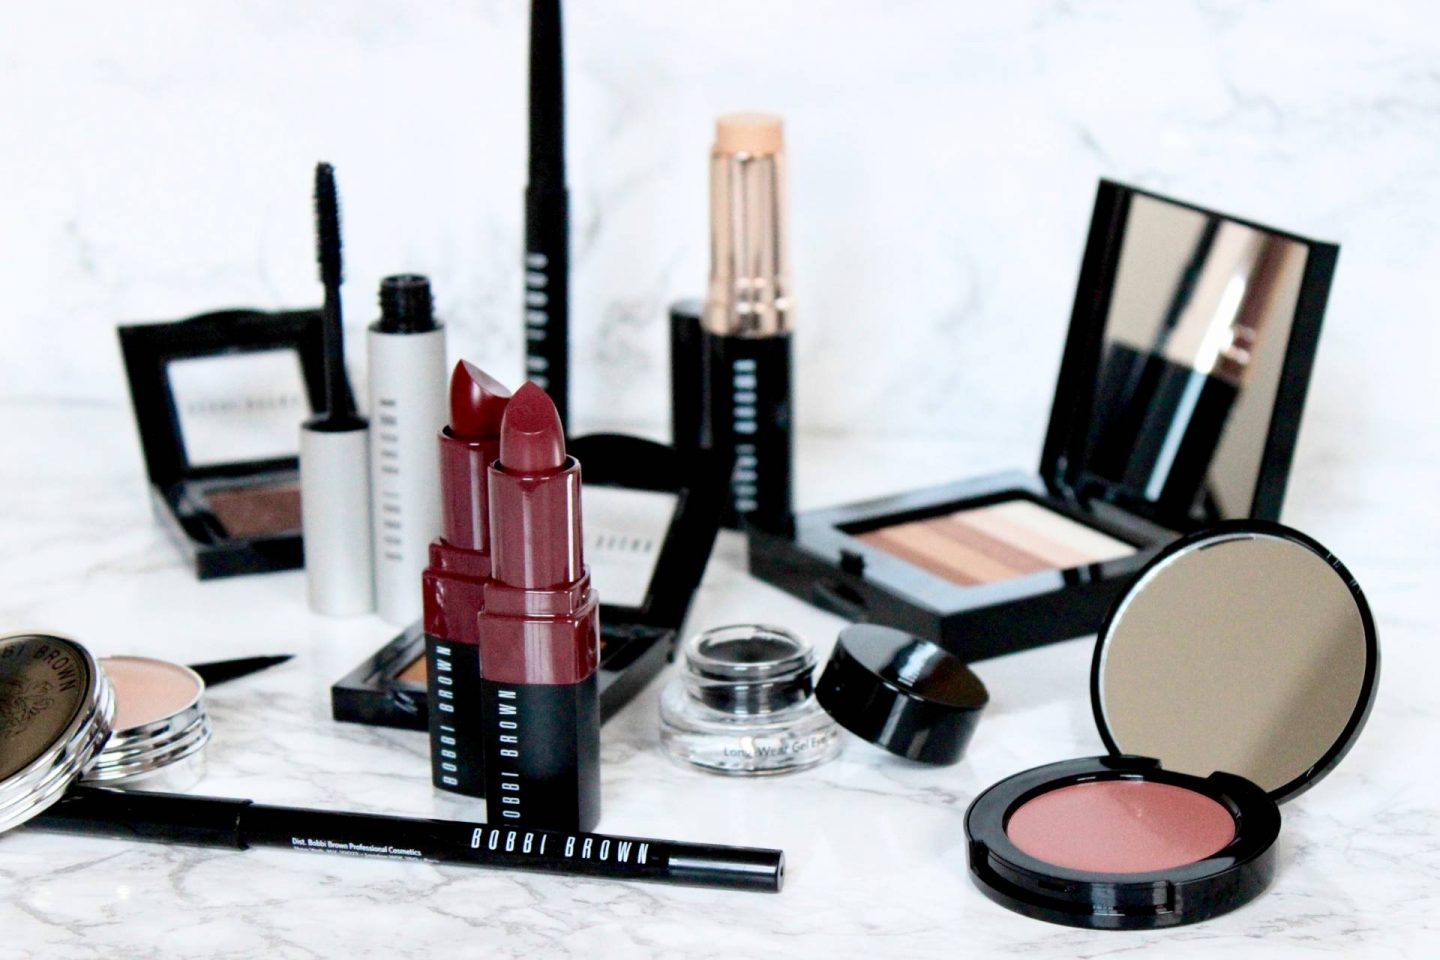 Bobbi Brown autumn beauty makeup edit